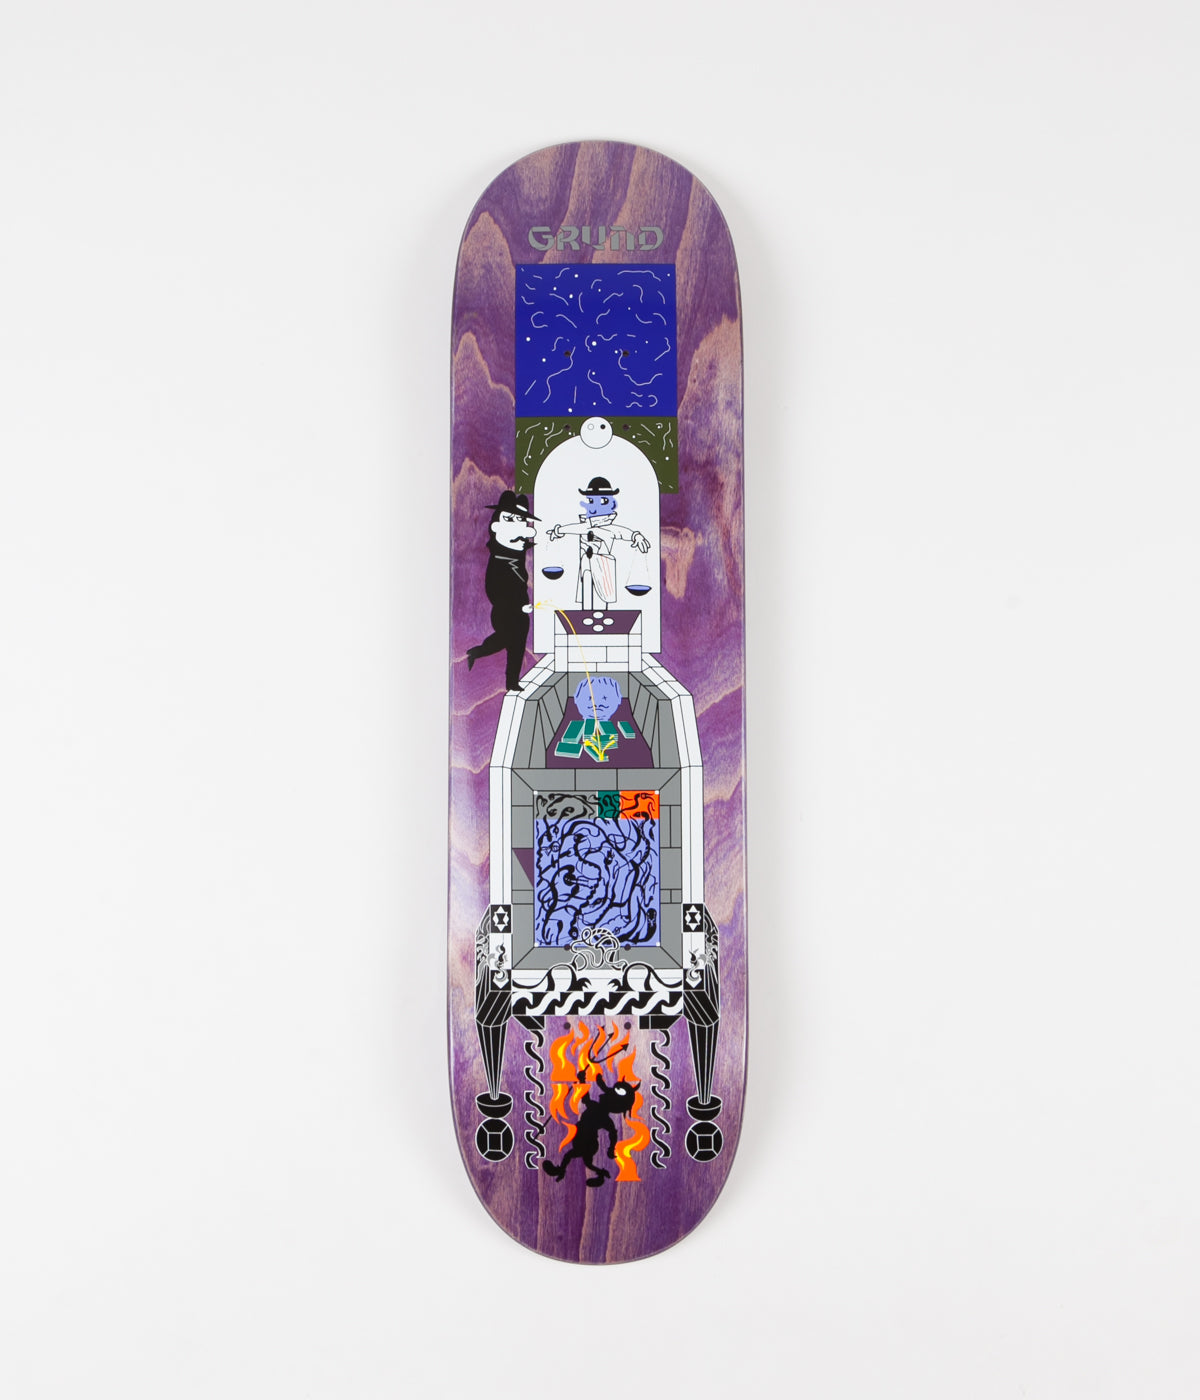 Polar Paul Grund Legacy Deck - 8.25""